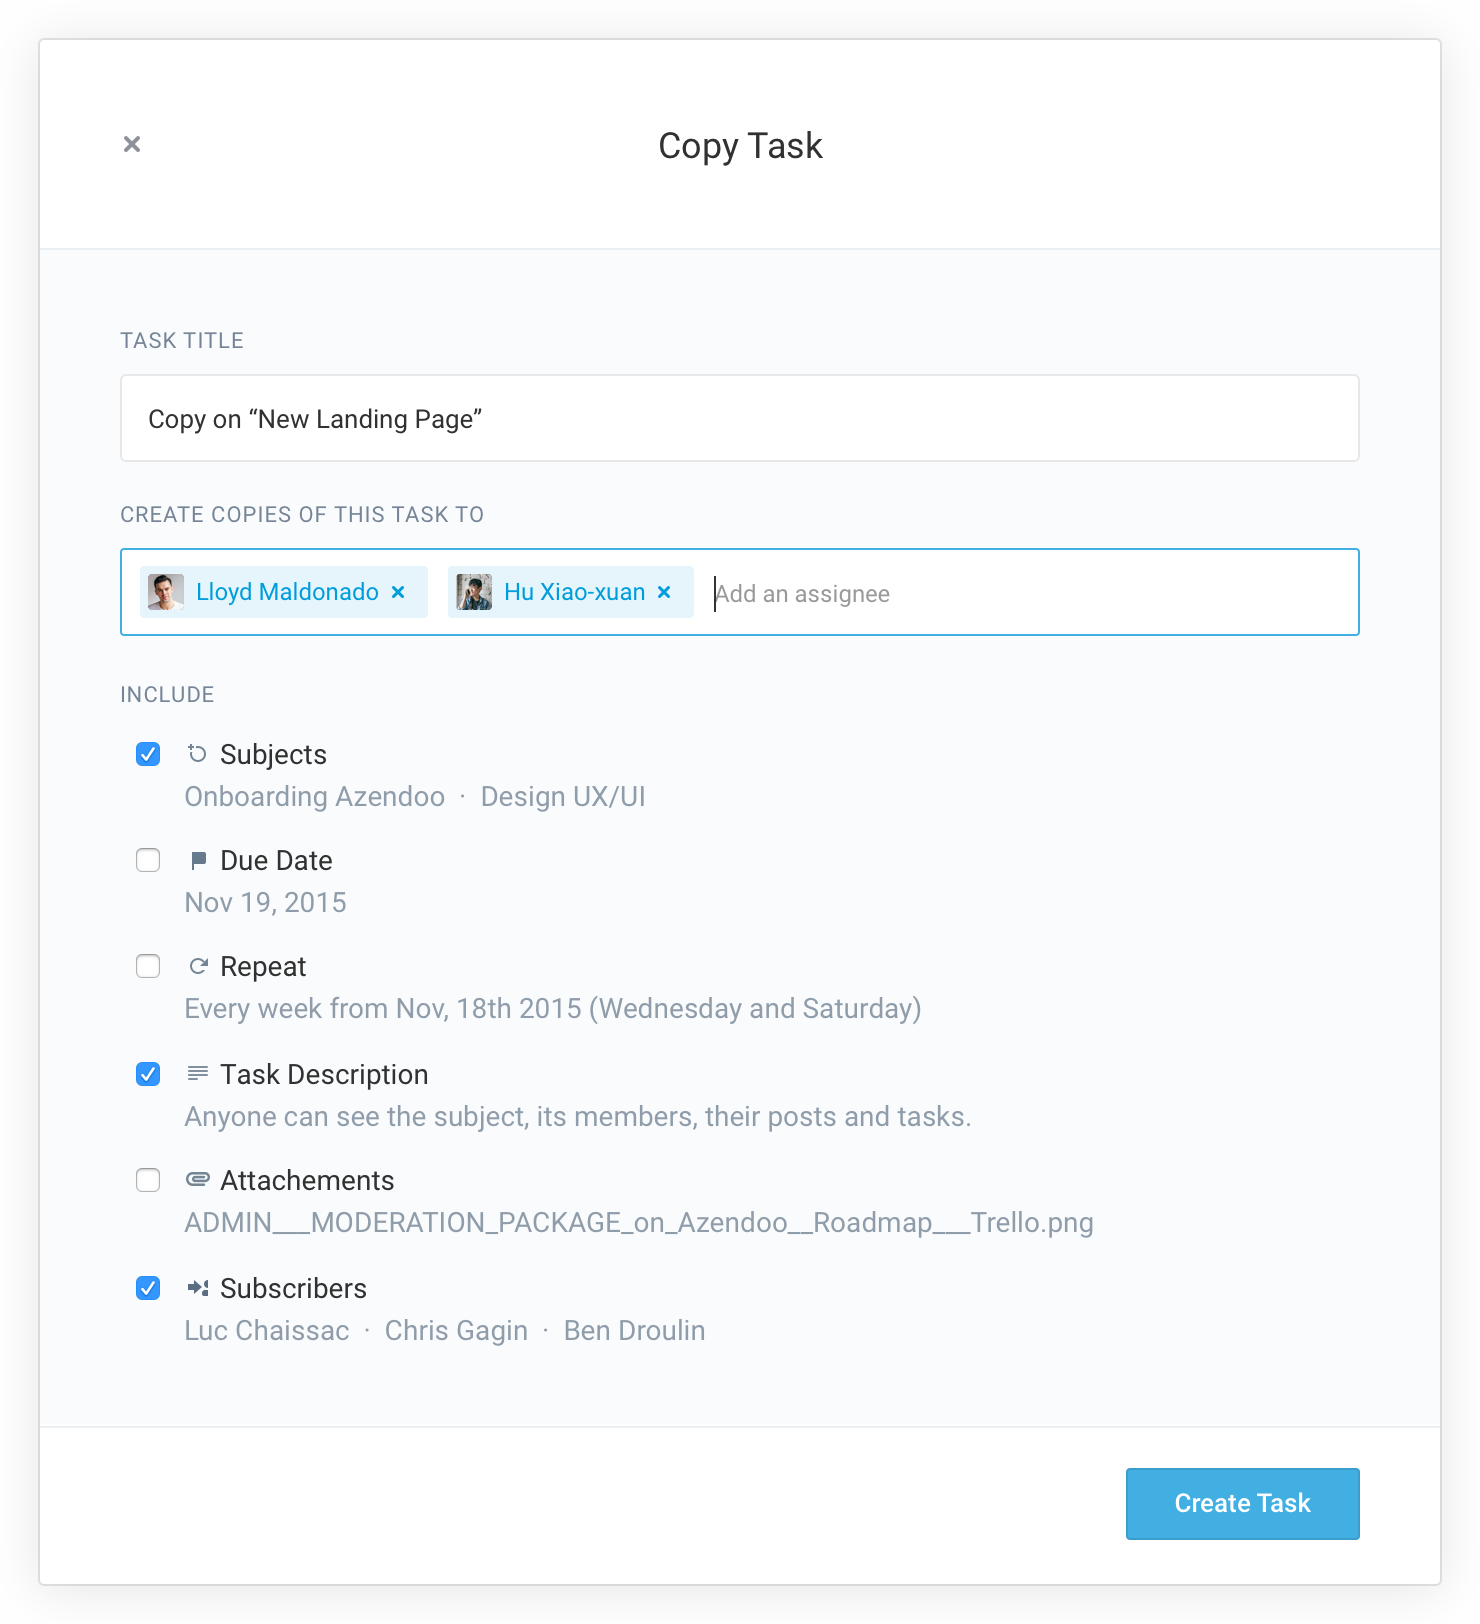 Create copies of a task to multiple people